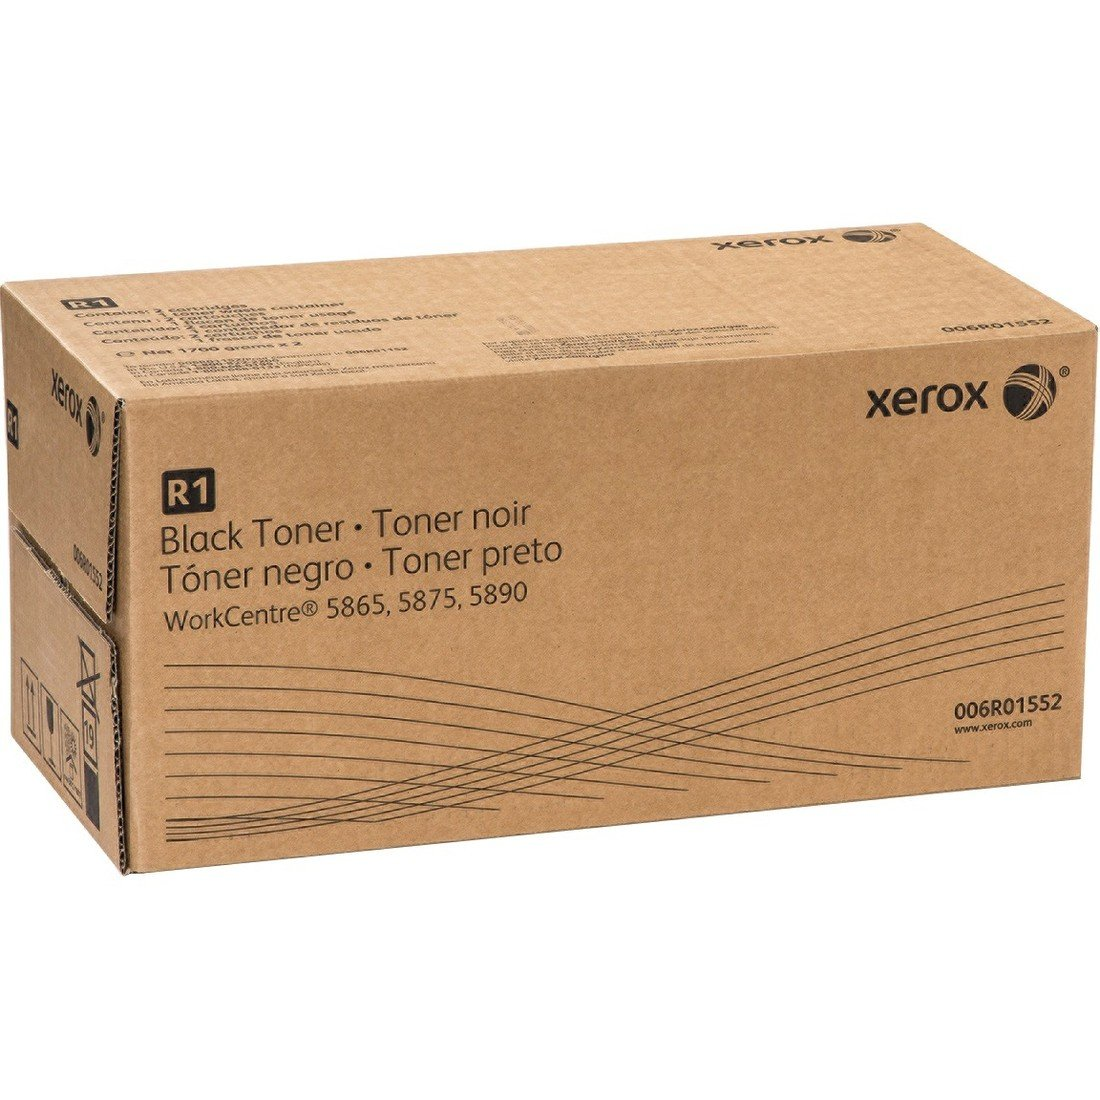 Toner Original XEROX 006R01552 (Black,2-Pack)